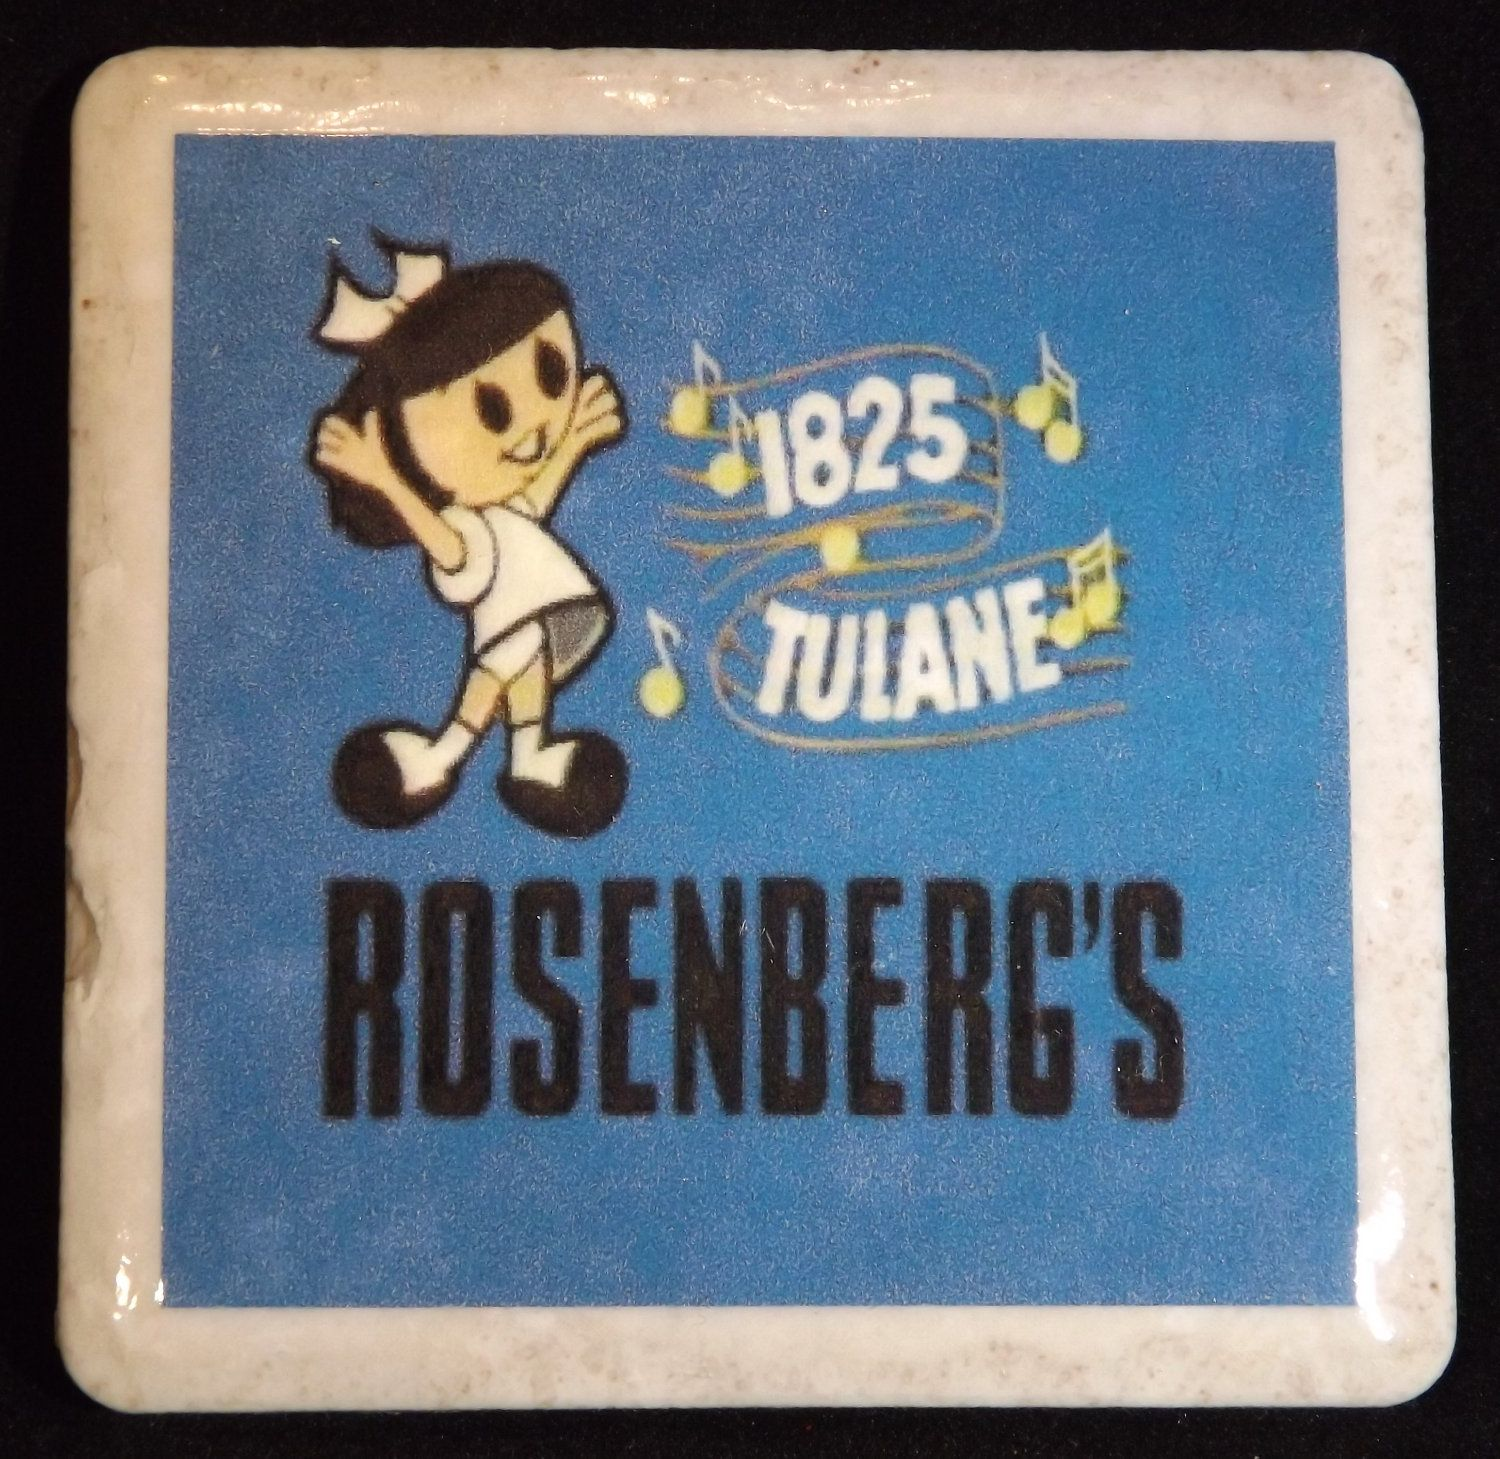 Coaster with image of locally famous logo for New Orleans Rosenberg's Furniture store located at 1825 Tulane. (via Etsy)